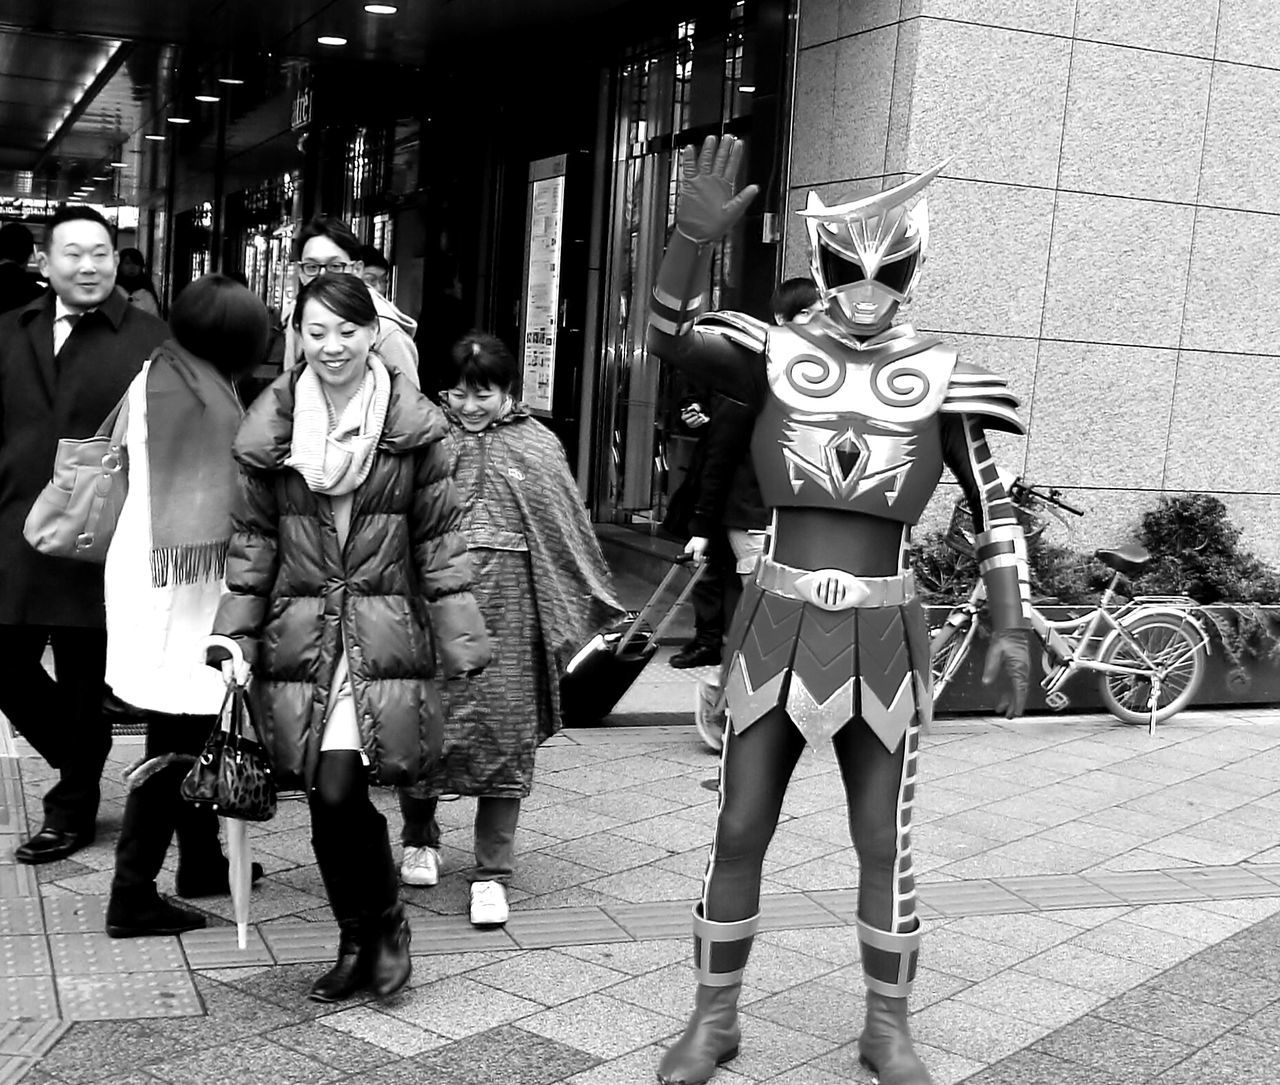 Tokio Japan Black And White Power Rangers Monochrome Blackandwhite Photography Blackandwhitephotography Relaxing Hi!Hello World